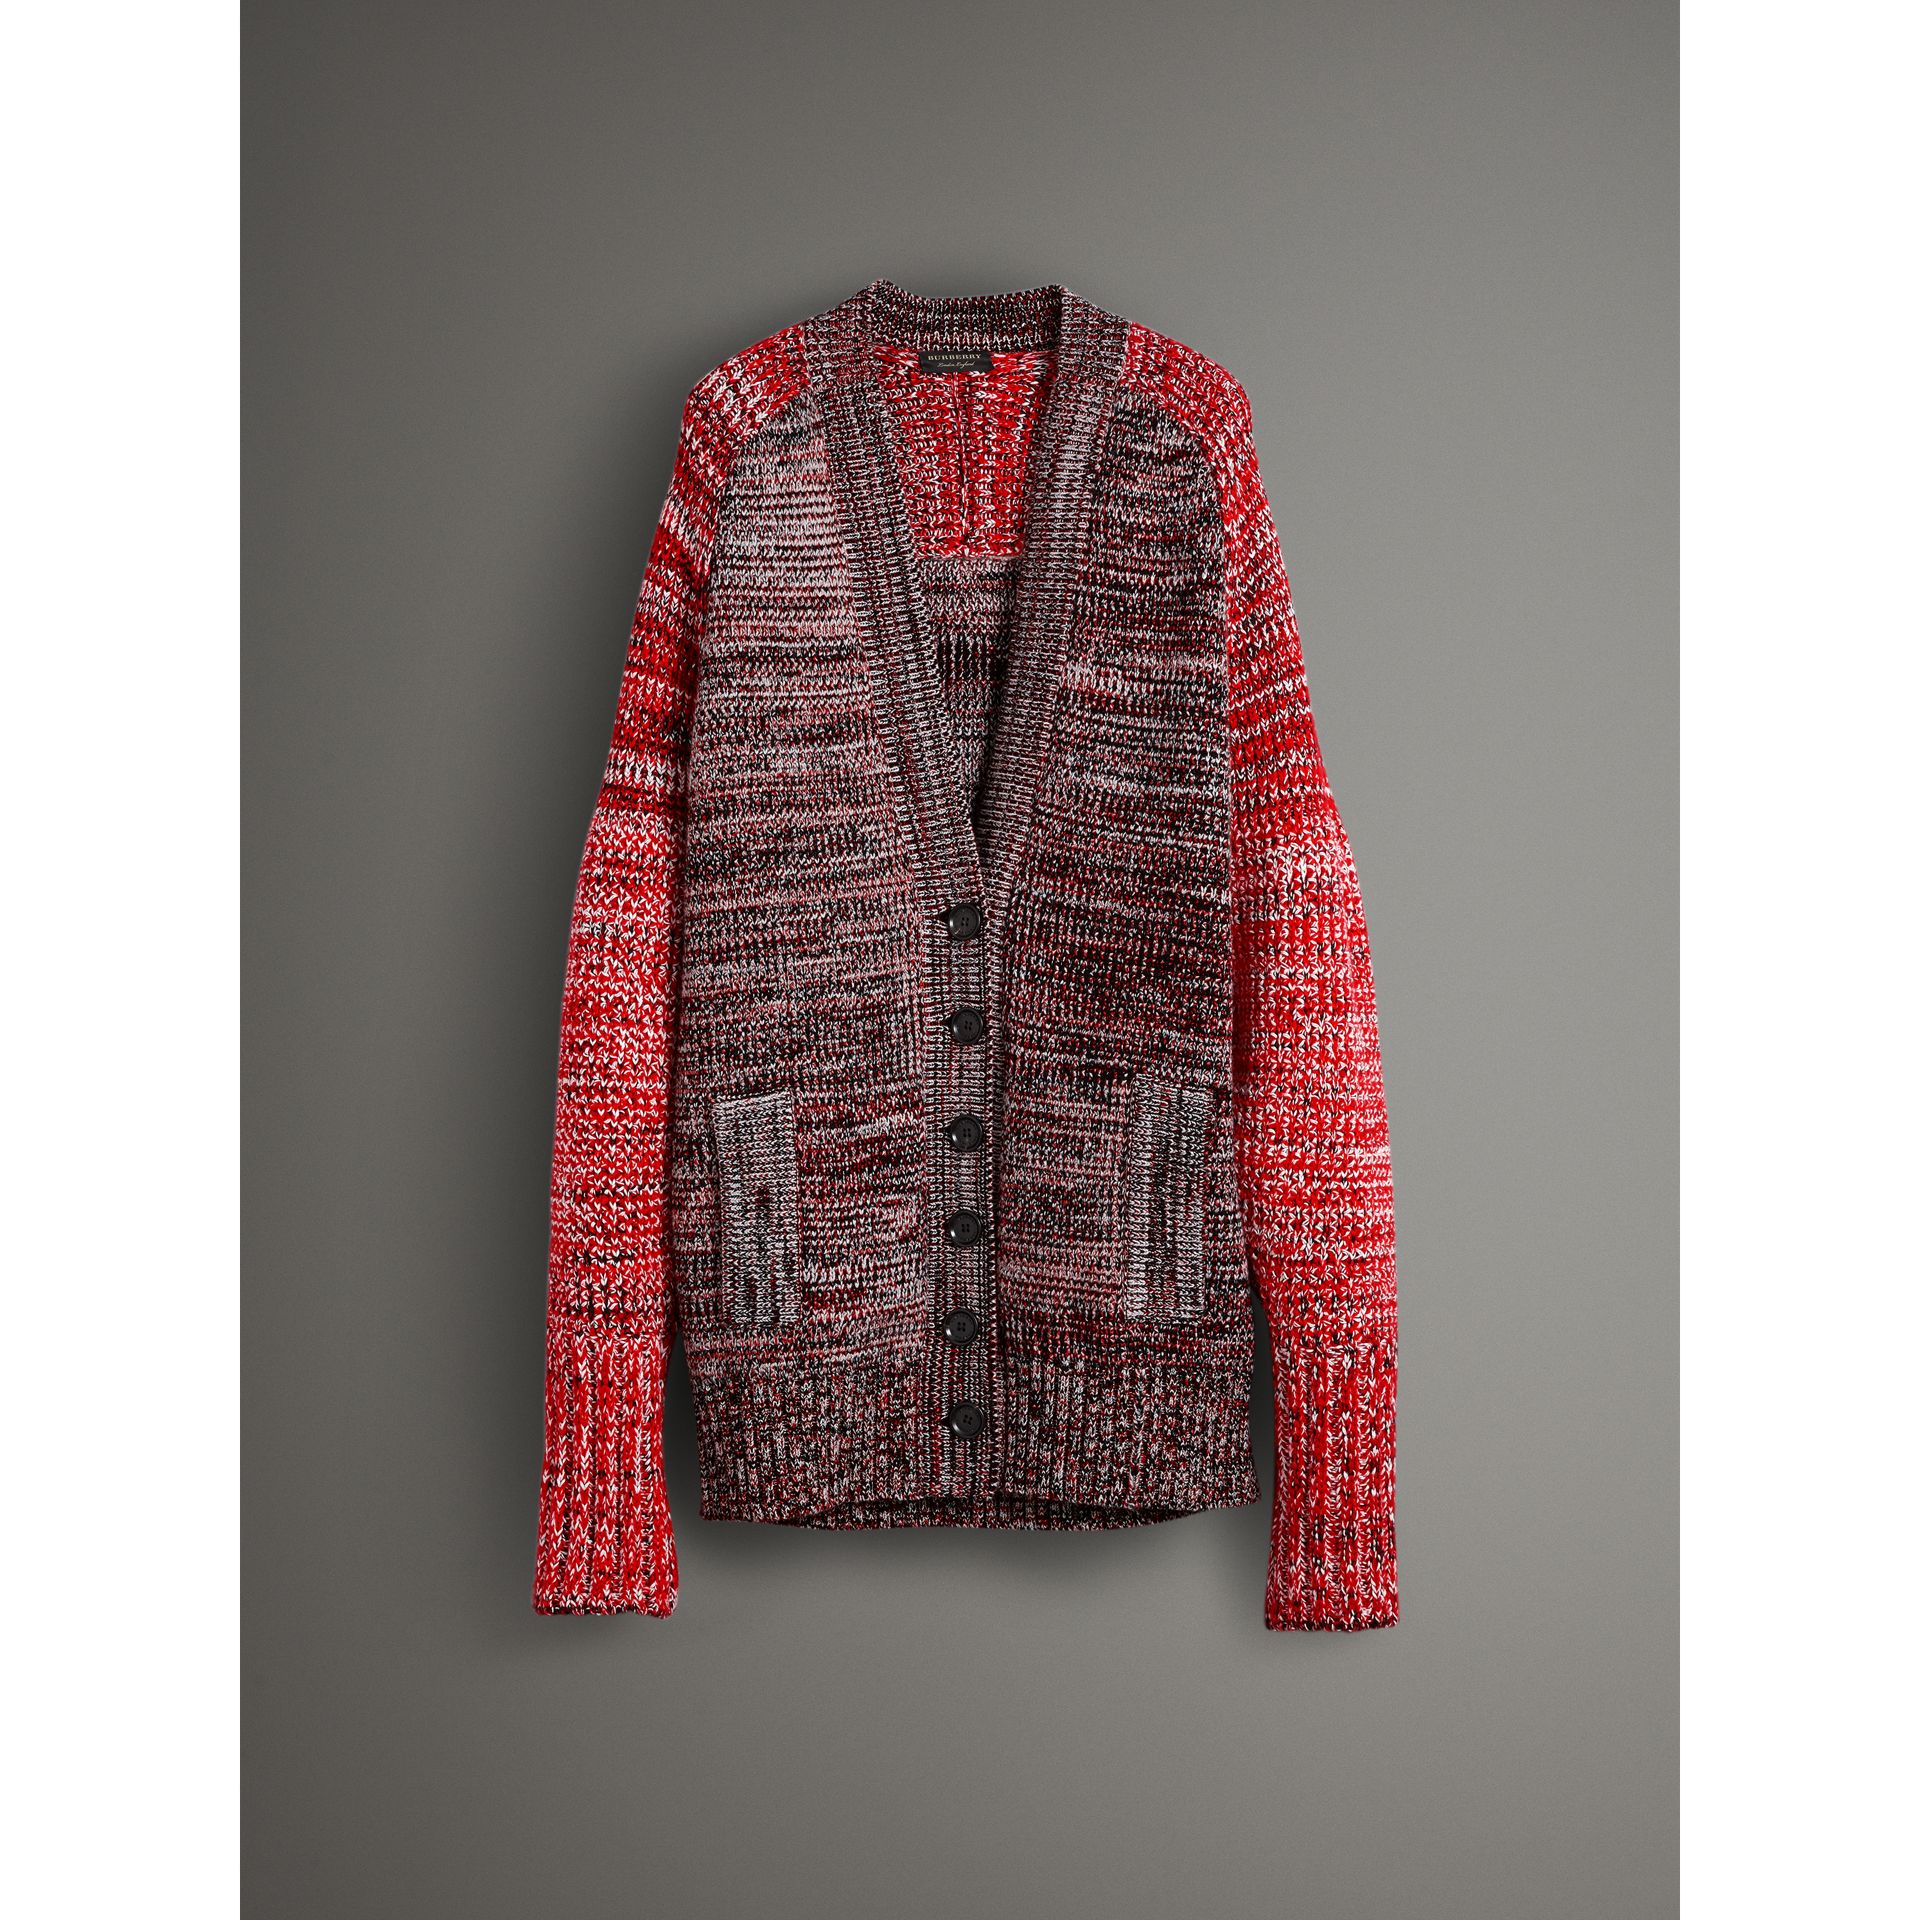 Cashmere Wool Blend Mouliné Oversized Cardigan in Red/black - Women | Burberry Australia - gallery image 4